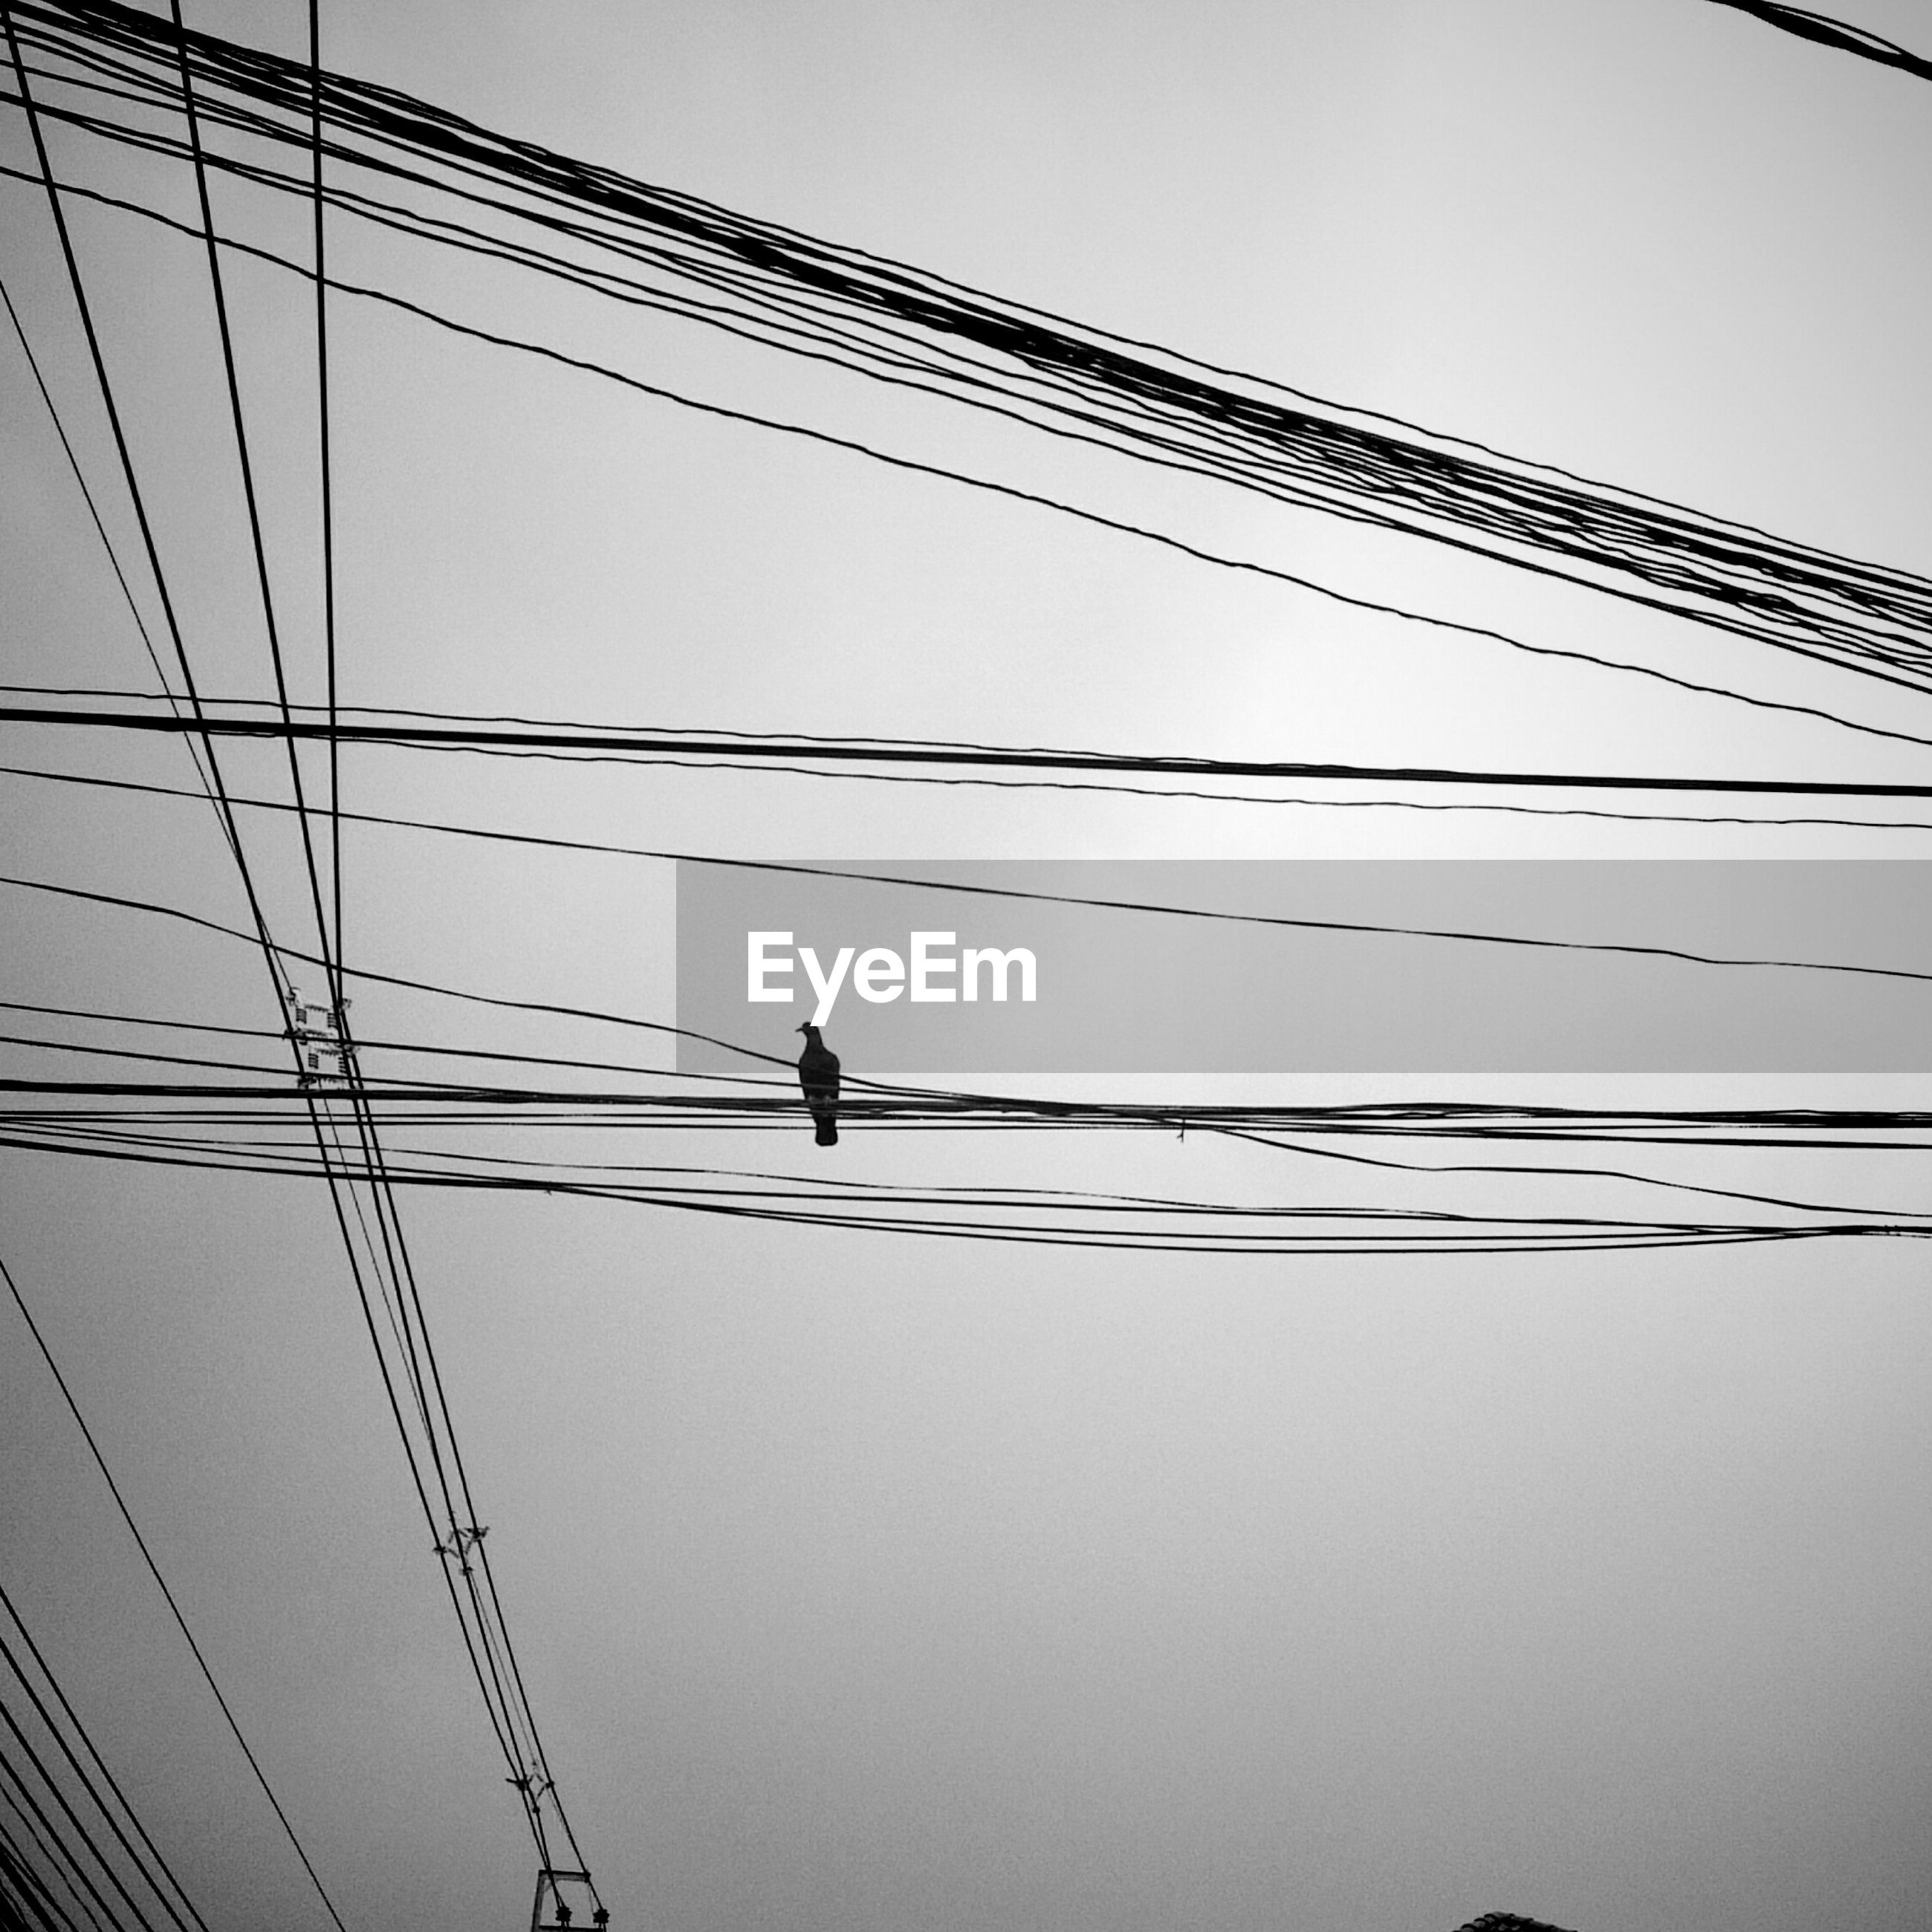 Low angle view of bird perching on power line against clear sky